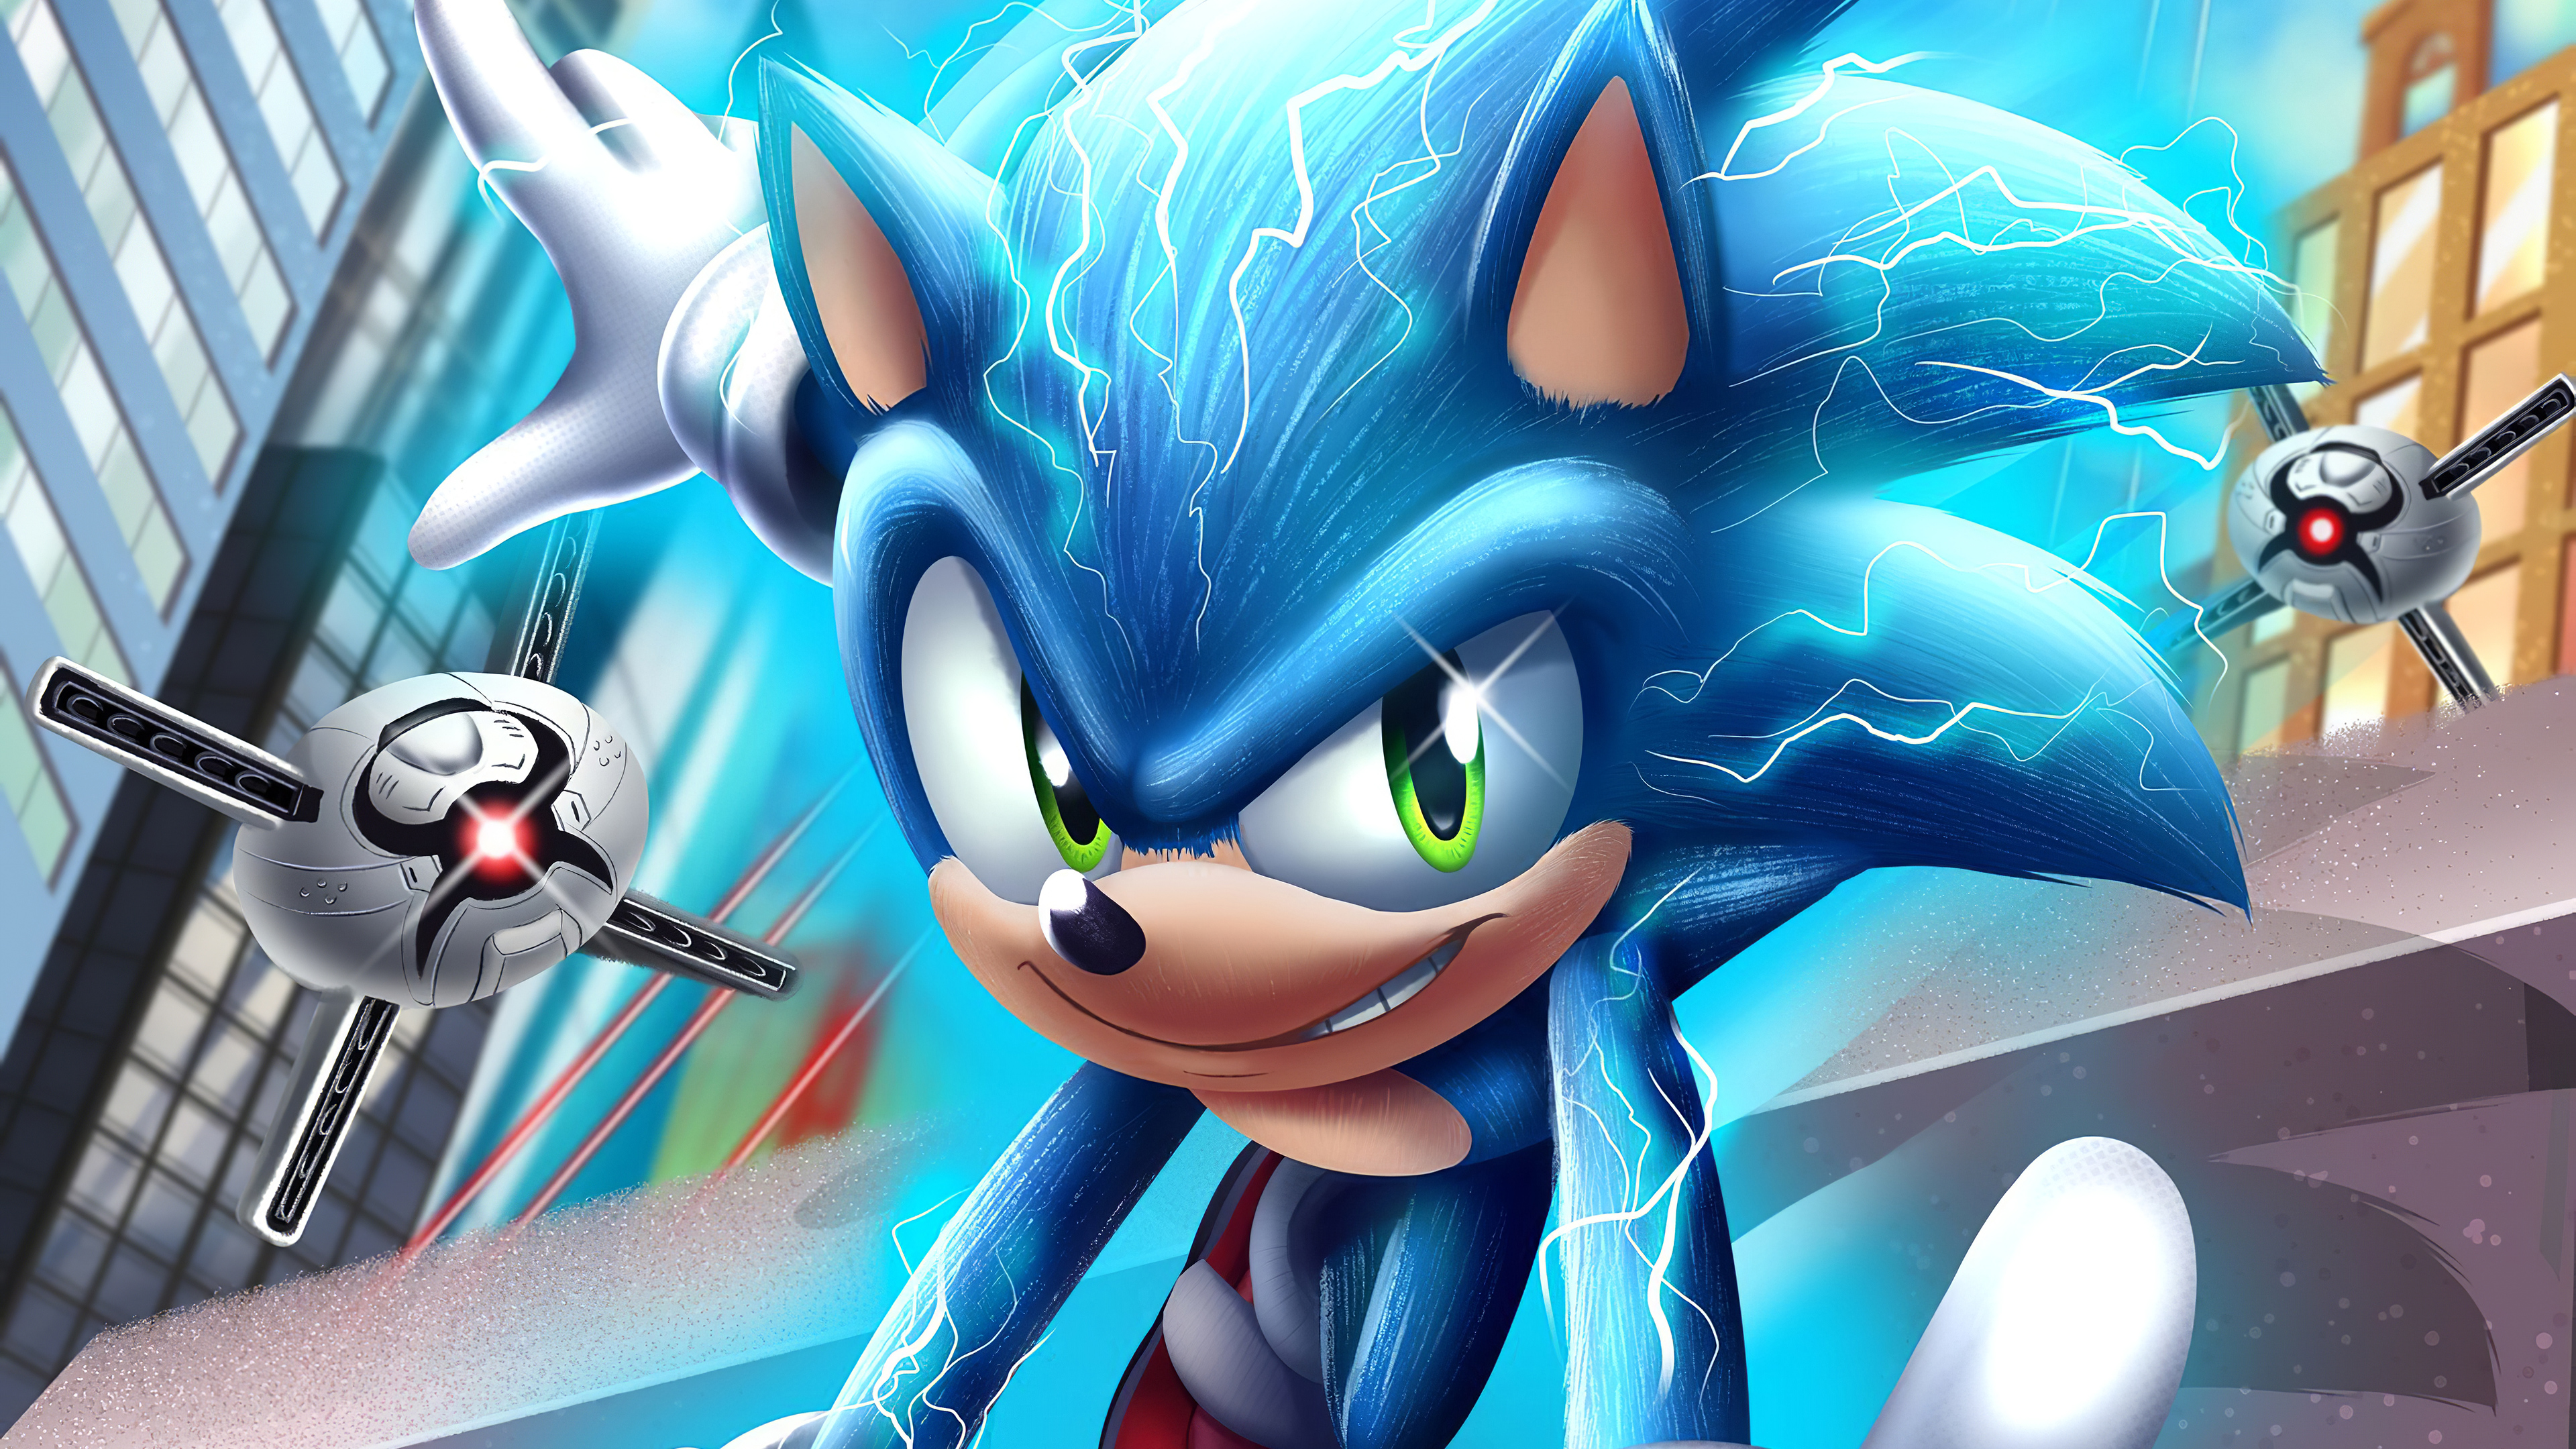 Sonic The Hedgehog 4k 2020 Hd Movies 4k Wallpapers Images Backgrounds Photos And Pictures